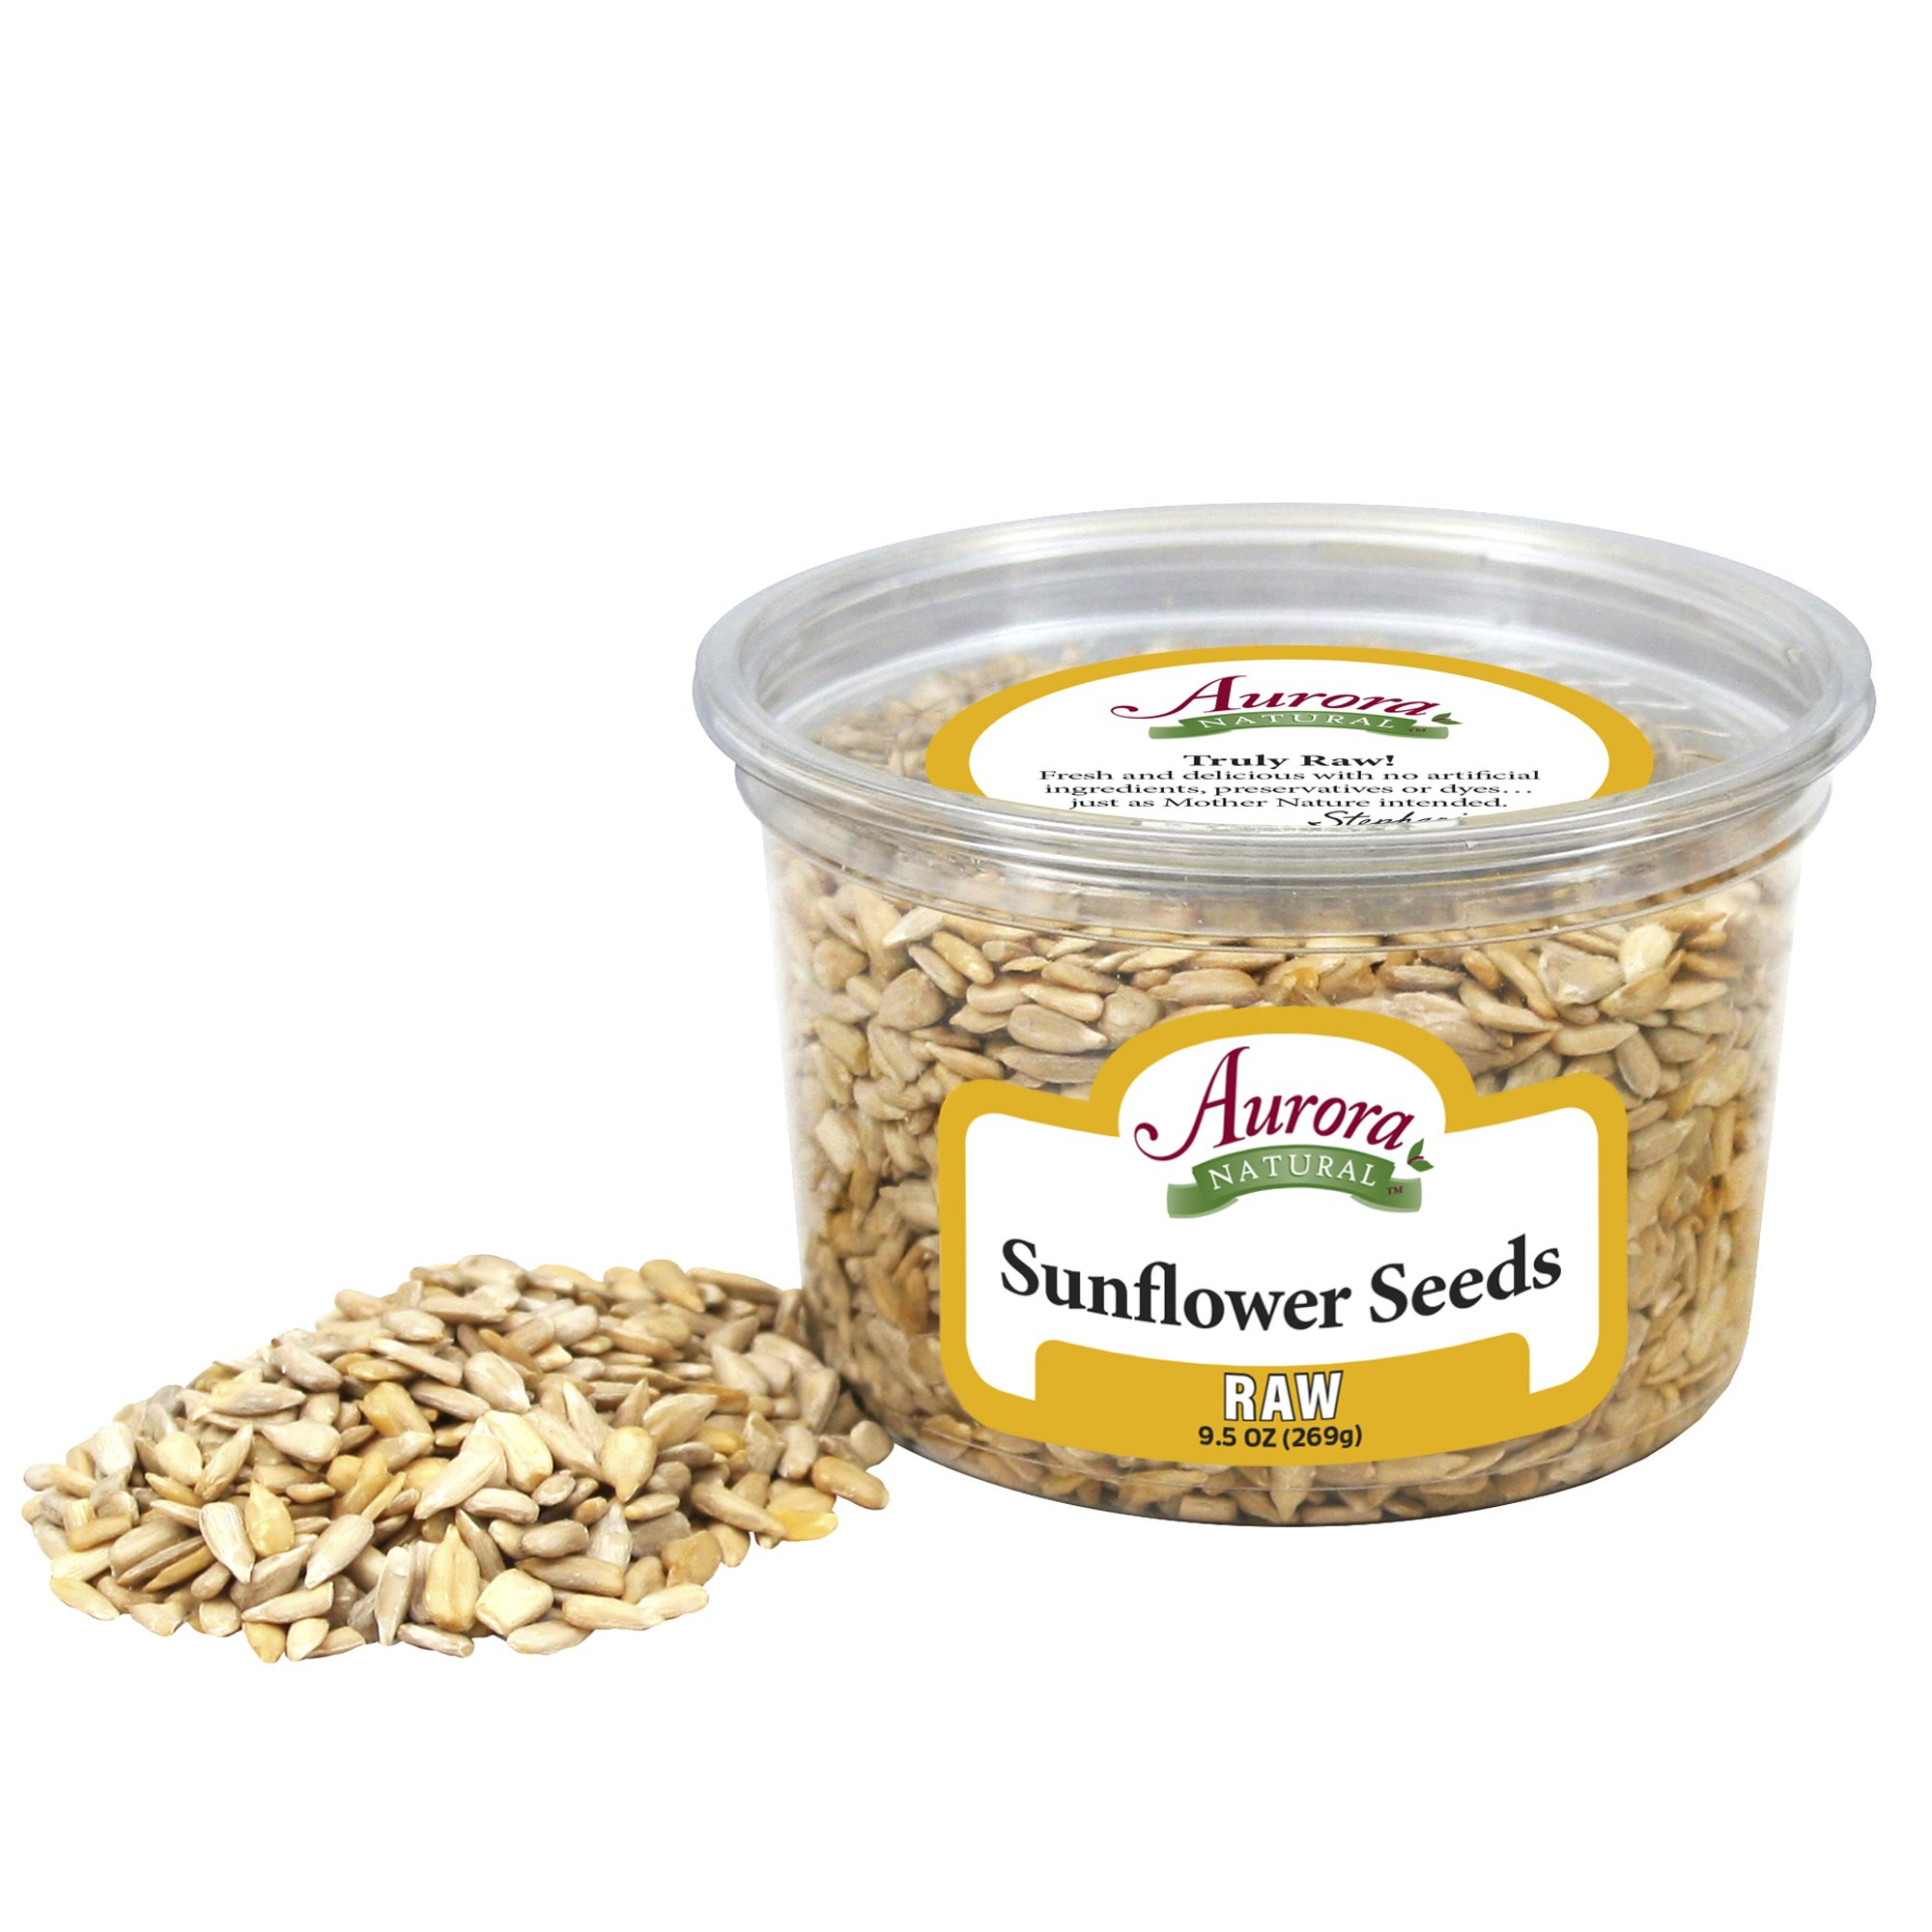 Aurora Natural Products Raw Sunflower Seeds, 9.5 Ounce (Pack of 12)